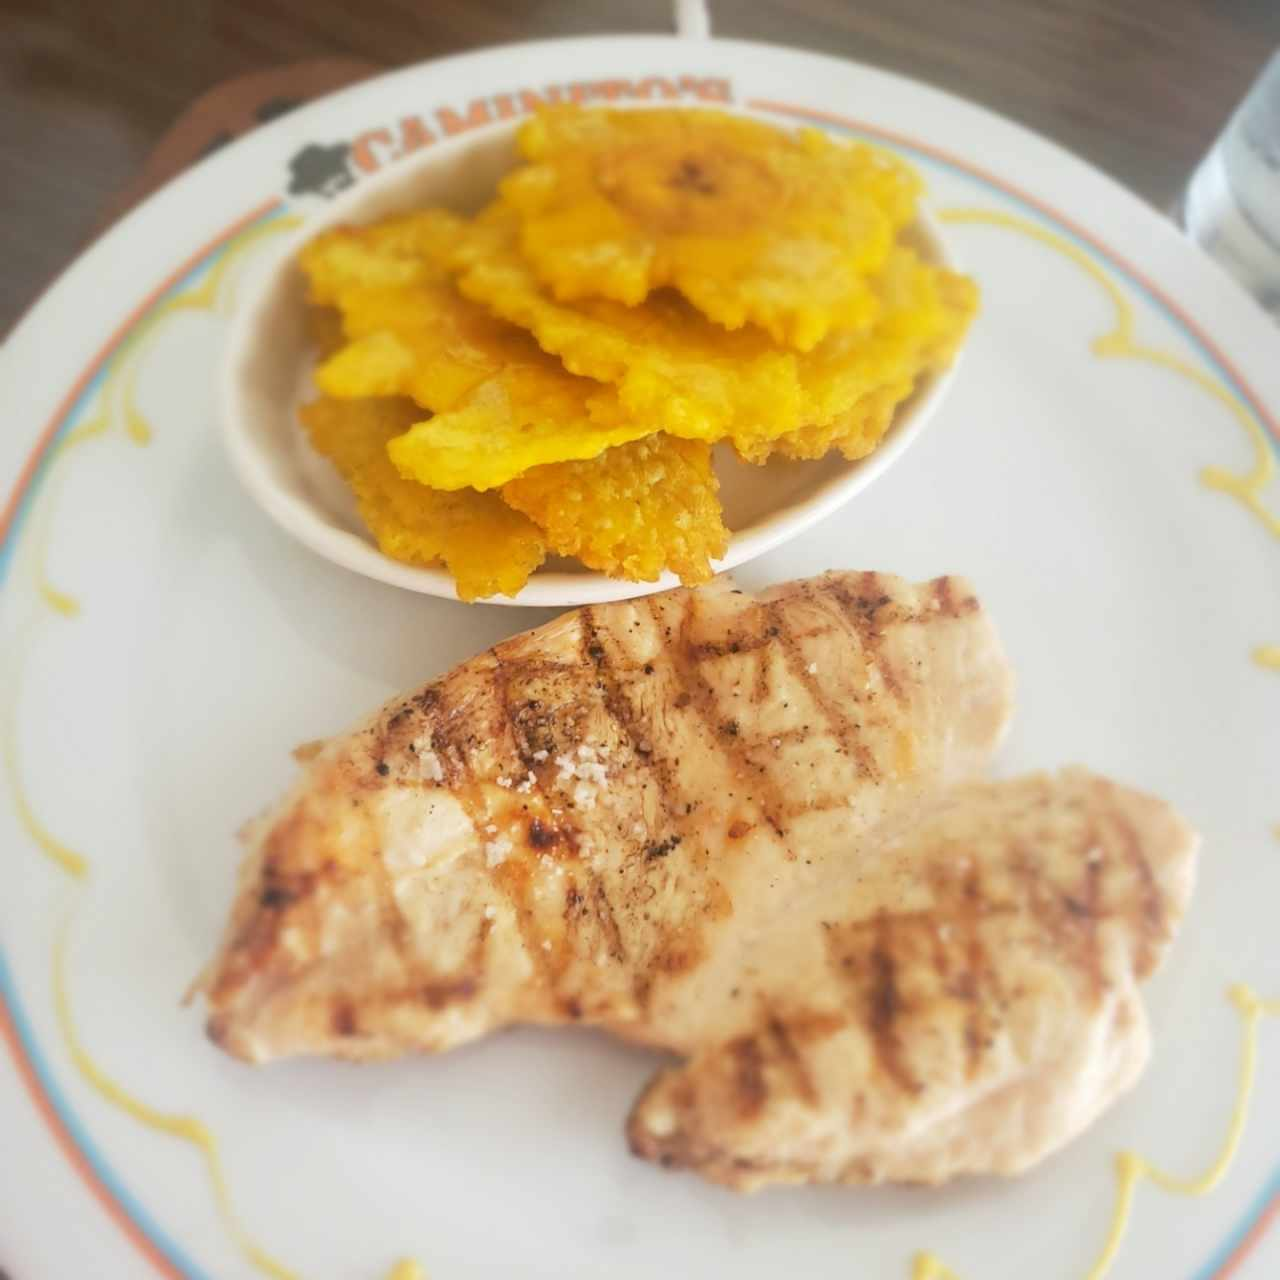 Filete de Pollo  a la parrilla con patacones